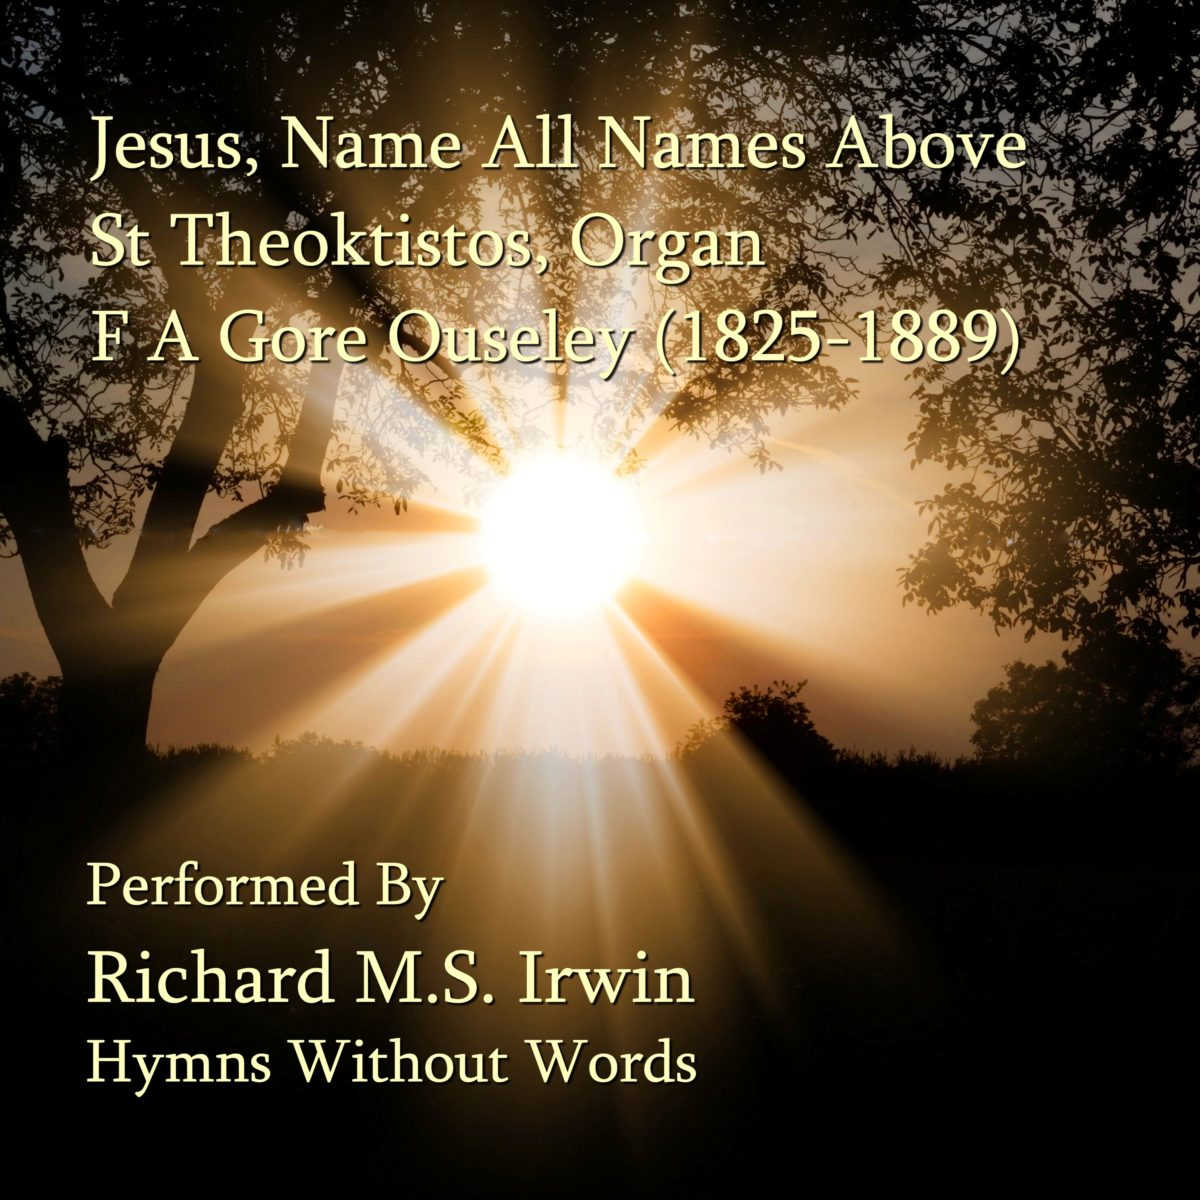 Jesus Name All Names Above (St Theoktistos, Organ, 3 Verses)